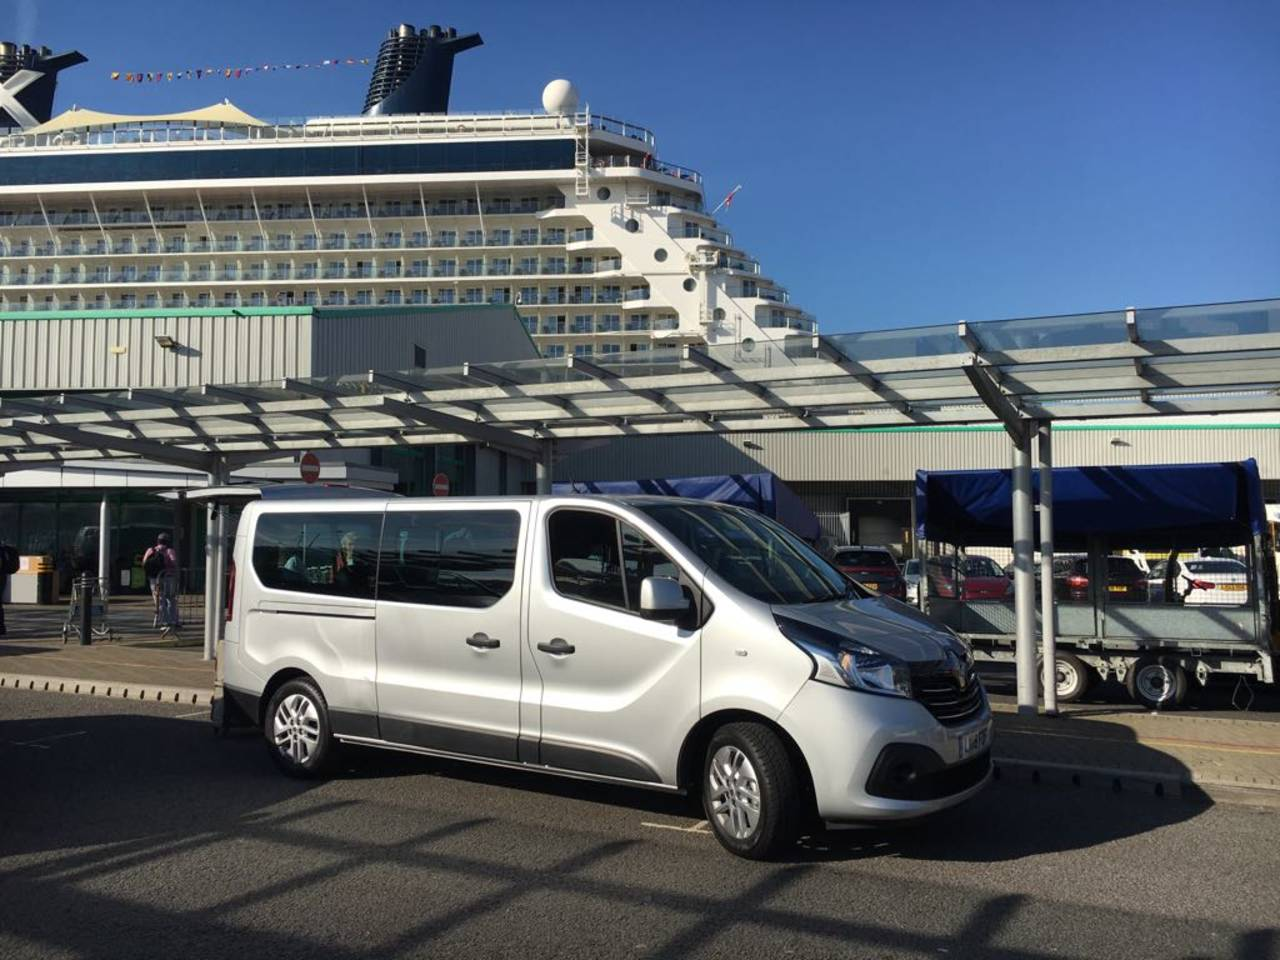 Southampton Cruise Terminal Shared Ride